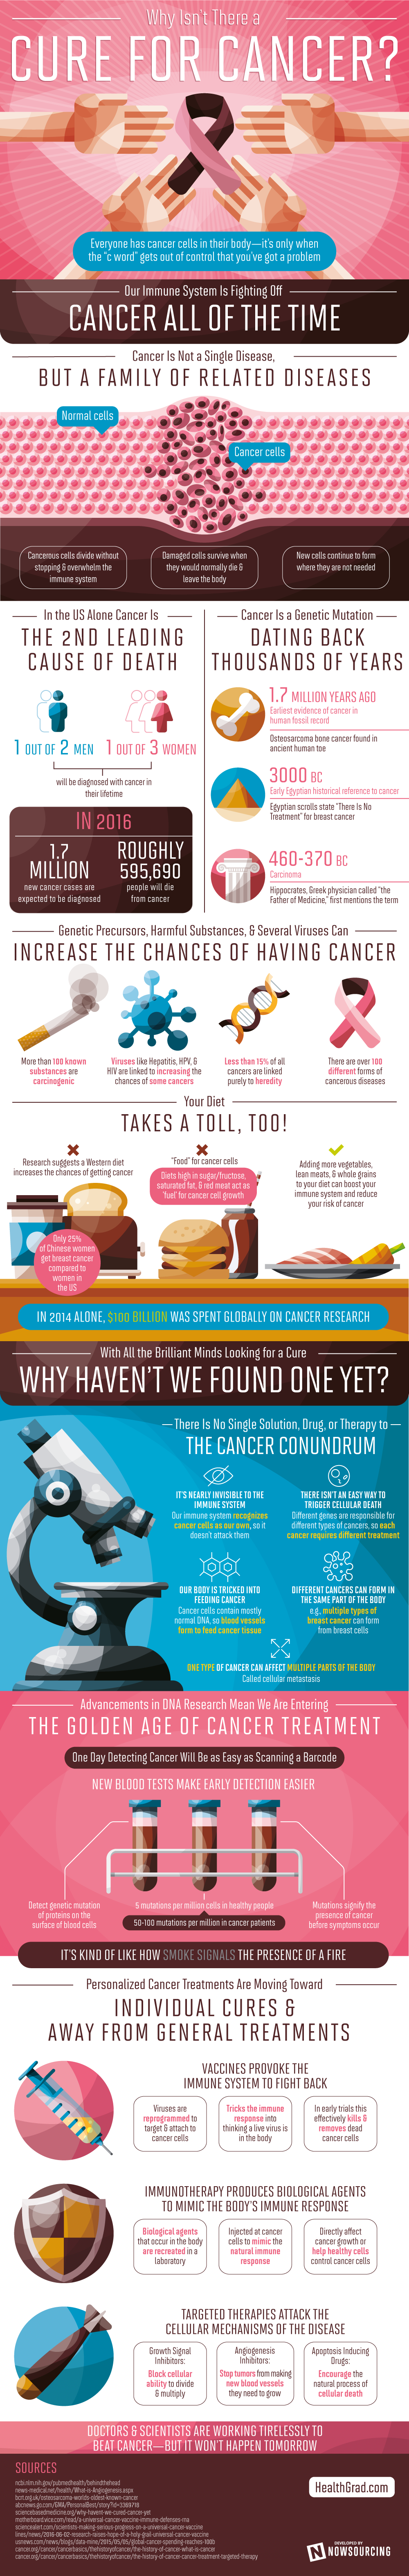 Why Isn't There a Cure for Cancer? #Infographic